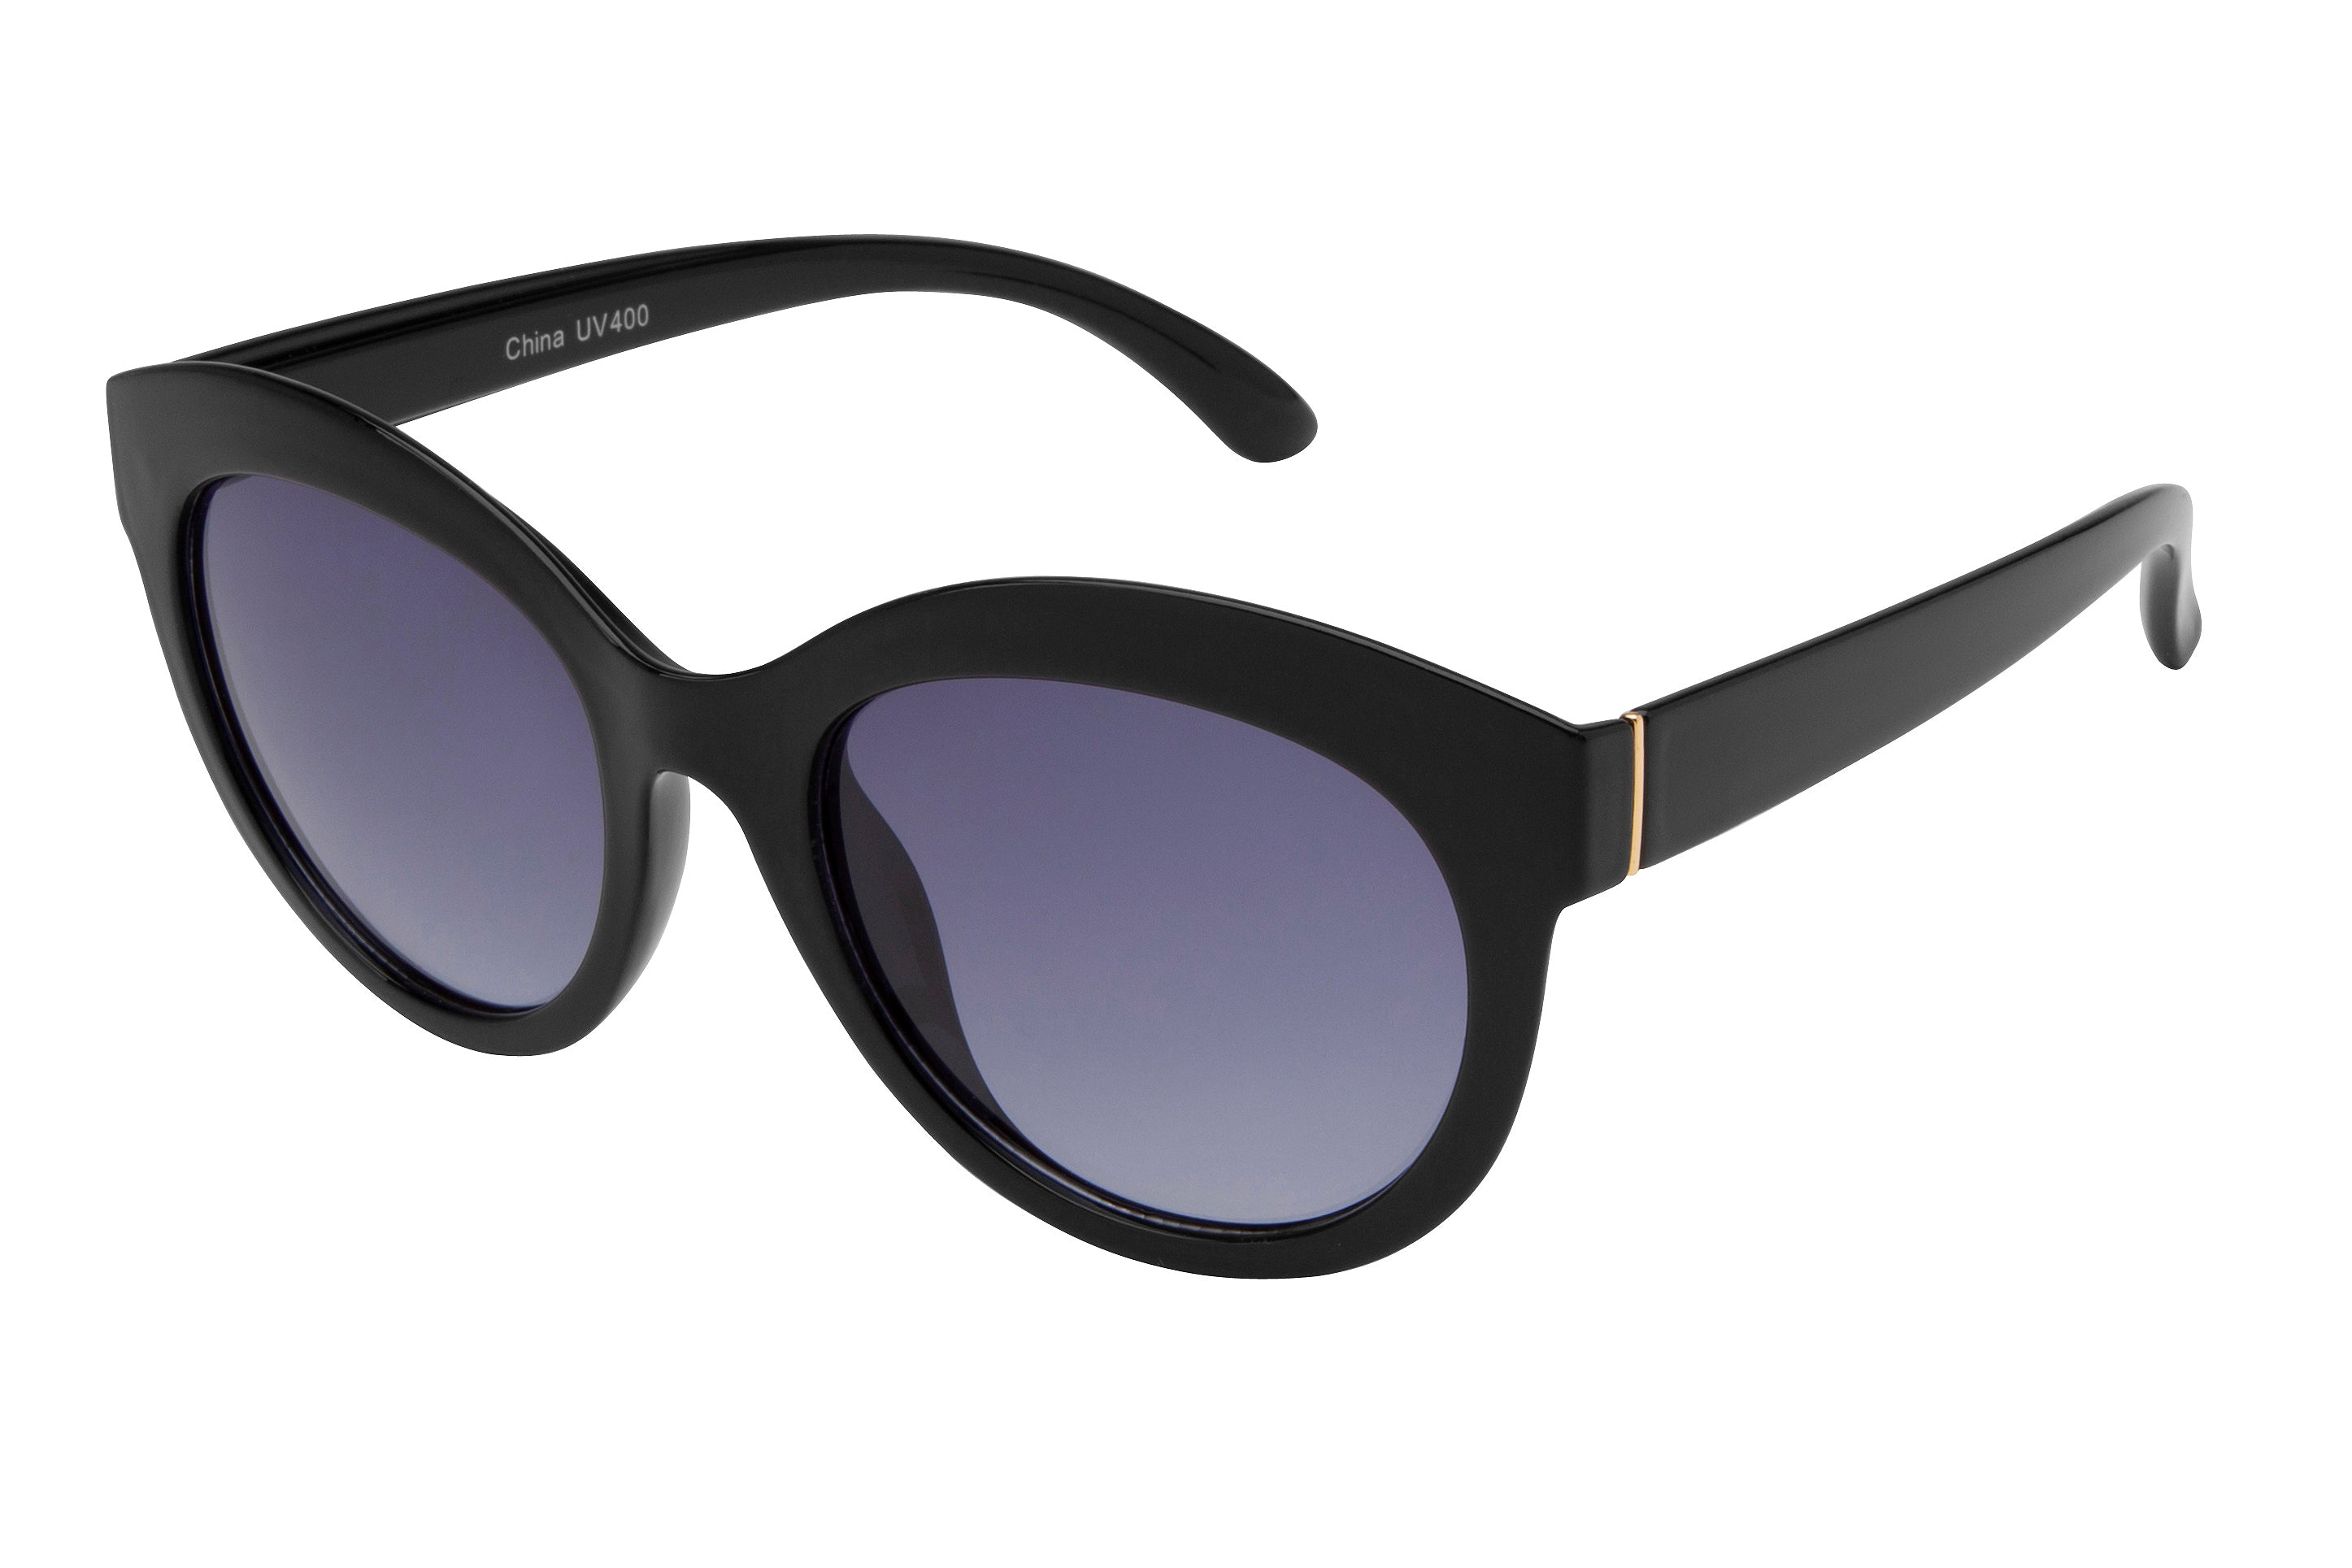 66101 - Vox PC Fashion Sunglasses